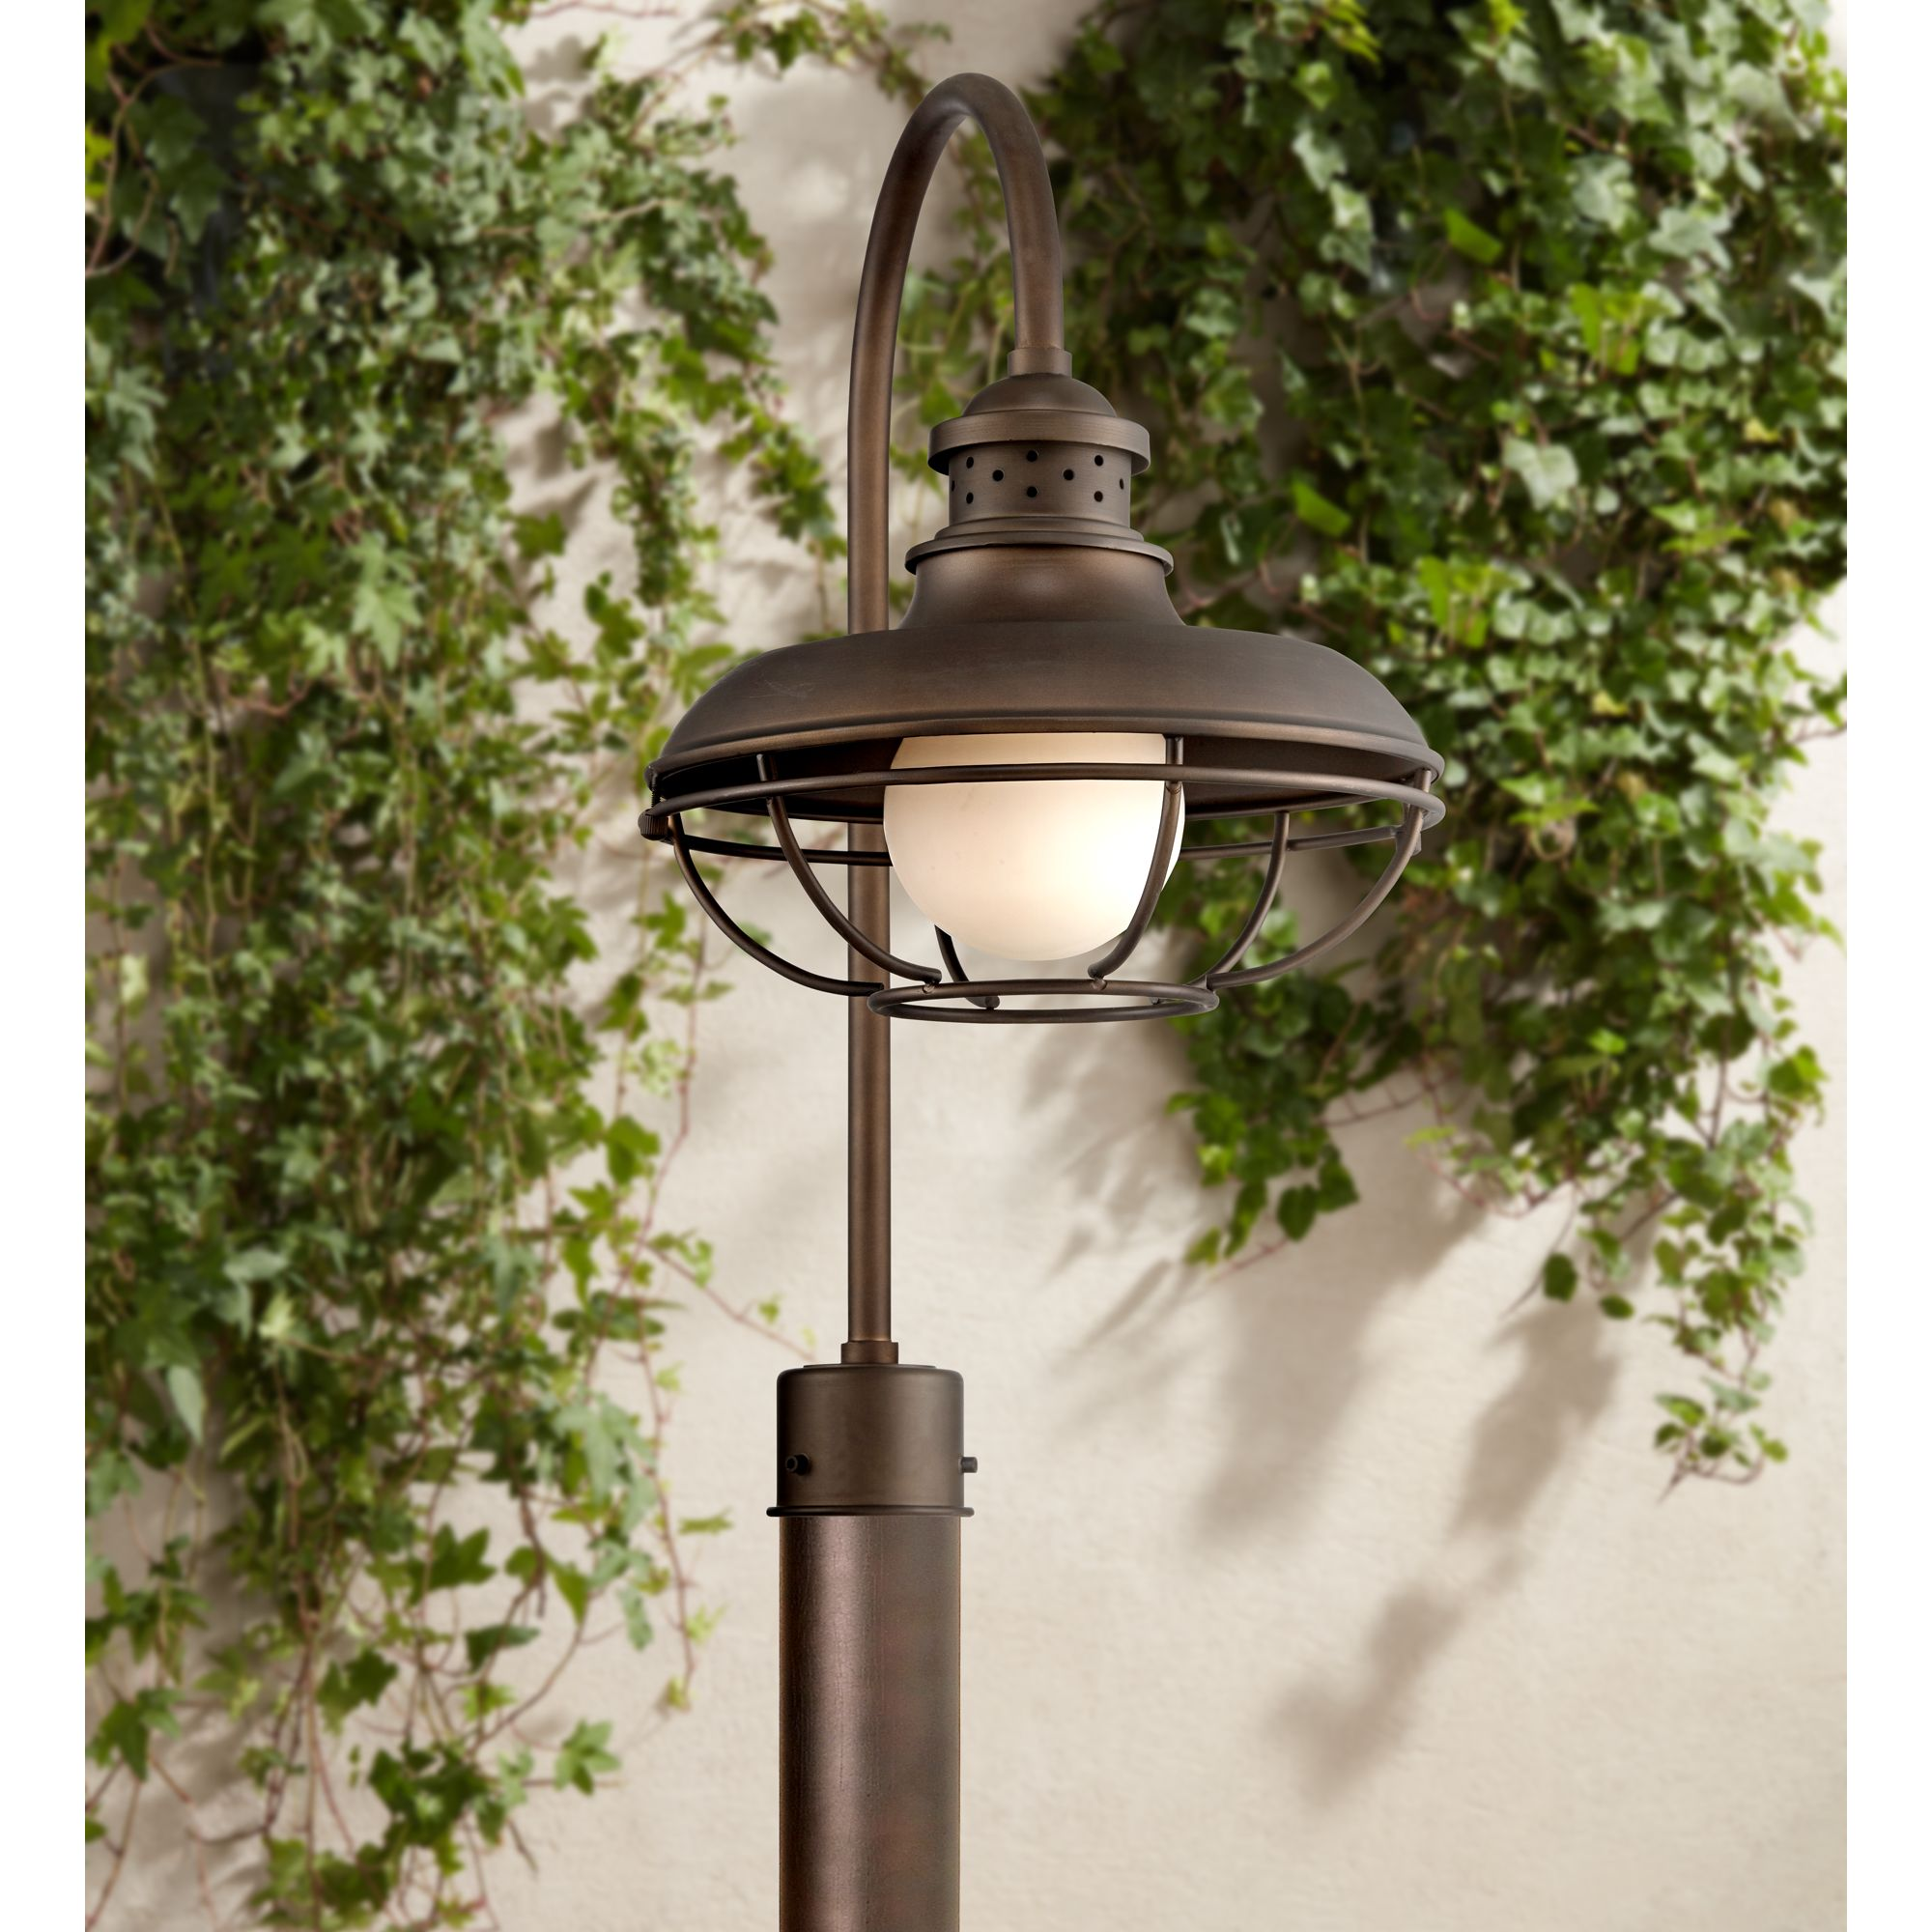 franklin iron works vintage outdoor post light oil rubbed bronze open cage 23 1 2 white glass orb for exterior garden yard porch walmart com